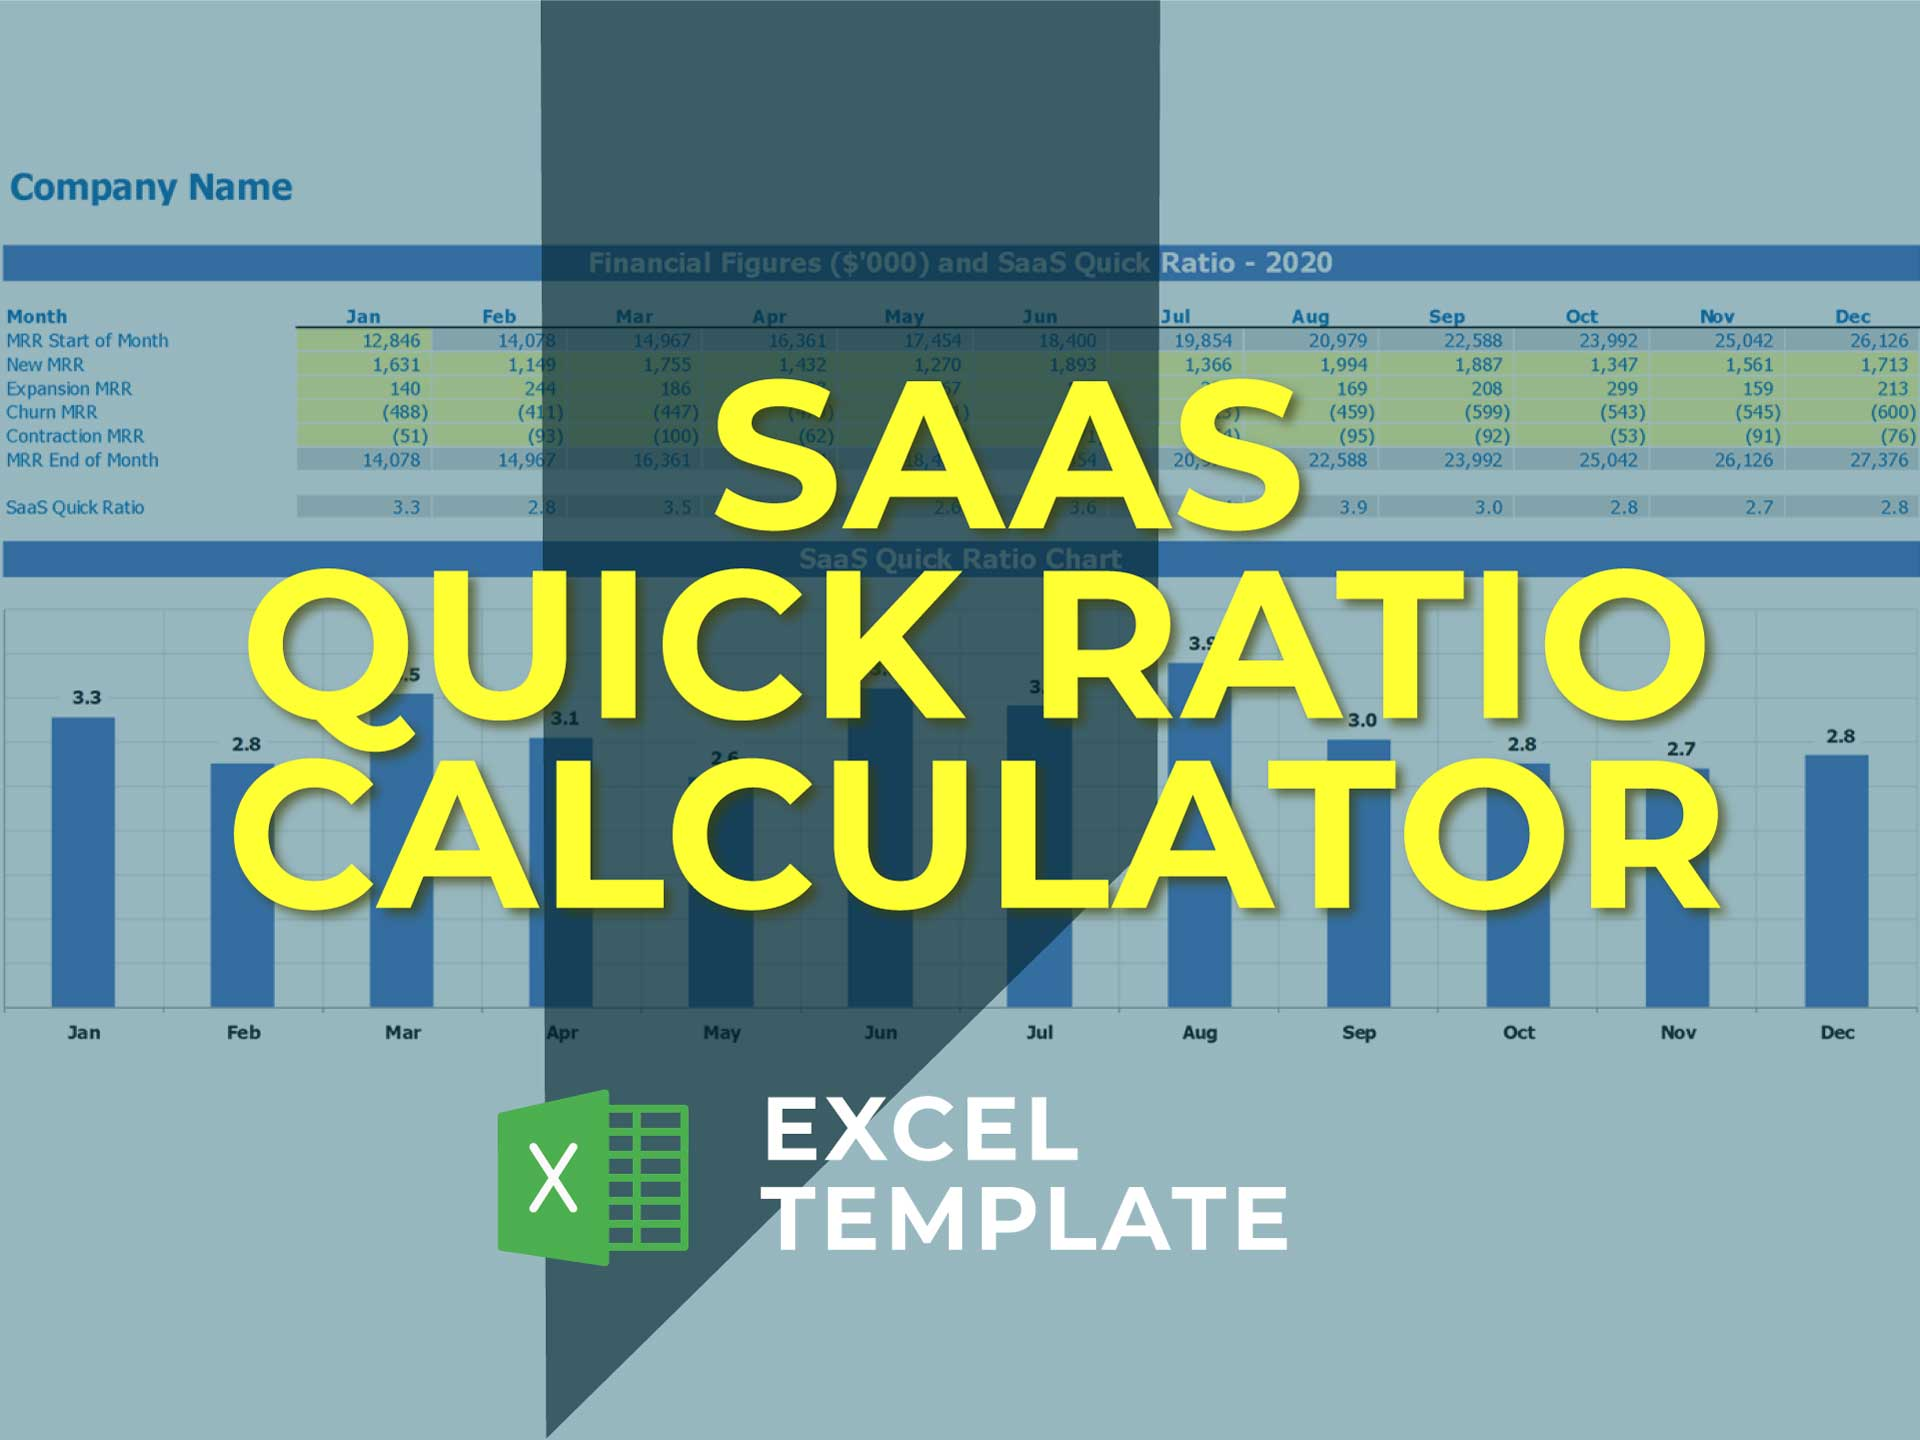 Saas Quick Ratio Calculator